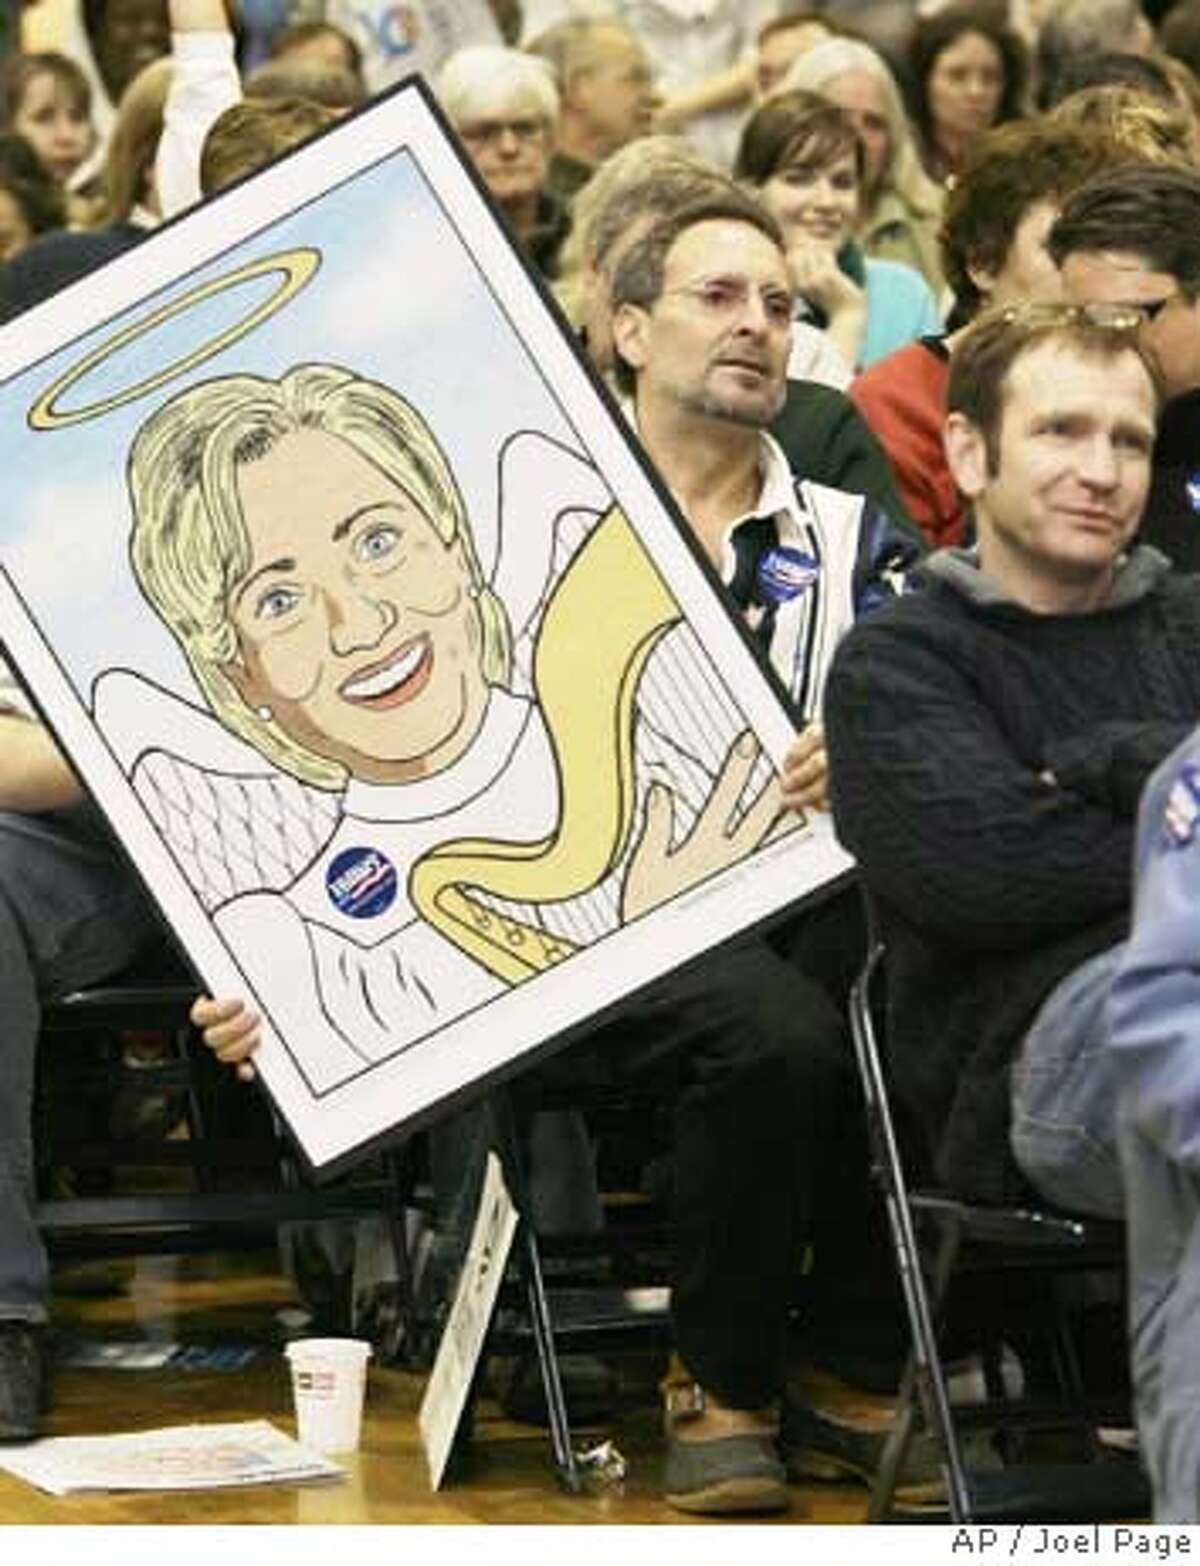 Doug Emerson holds a poster depicting Democratic presidential hopeful Sen. Hillary Clinton Sunday, Feb. 10, 2008, during the Democratic Caucus at Portland High School in Portland, Maine. (AP Photo/Joel Page)